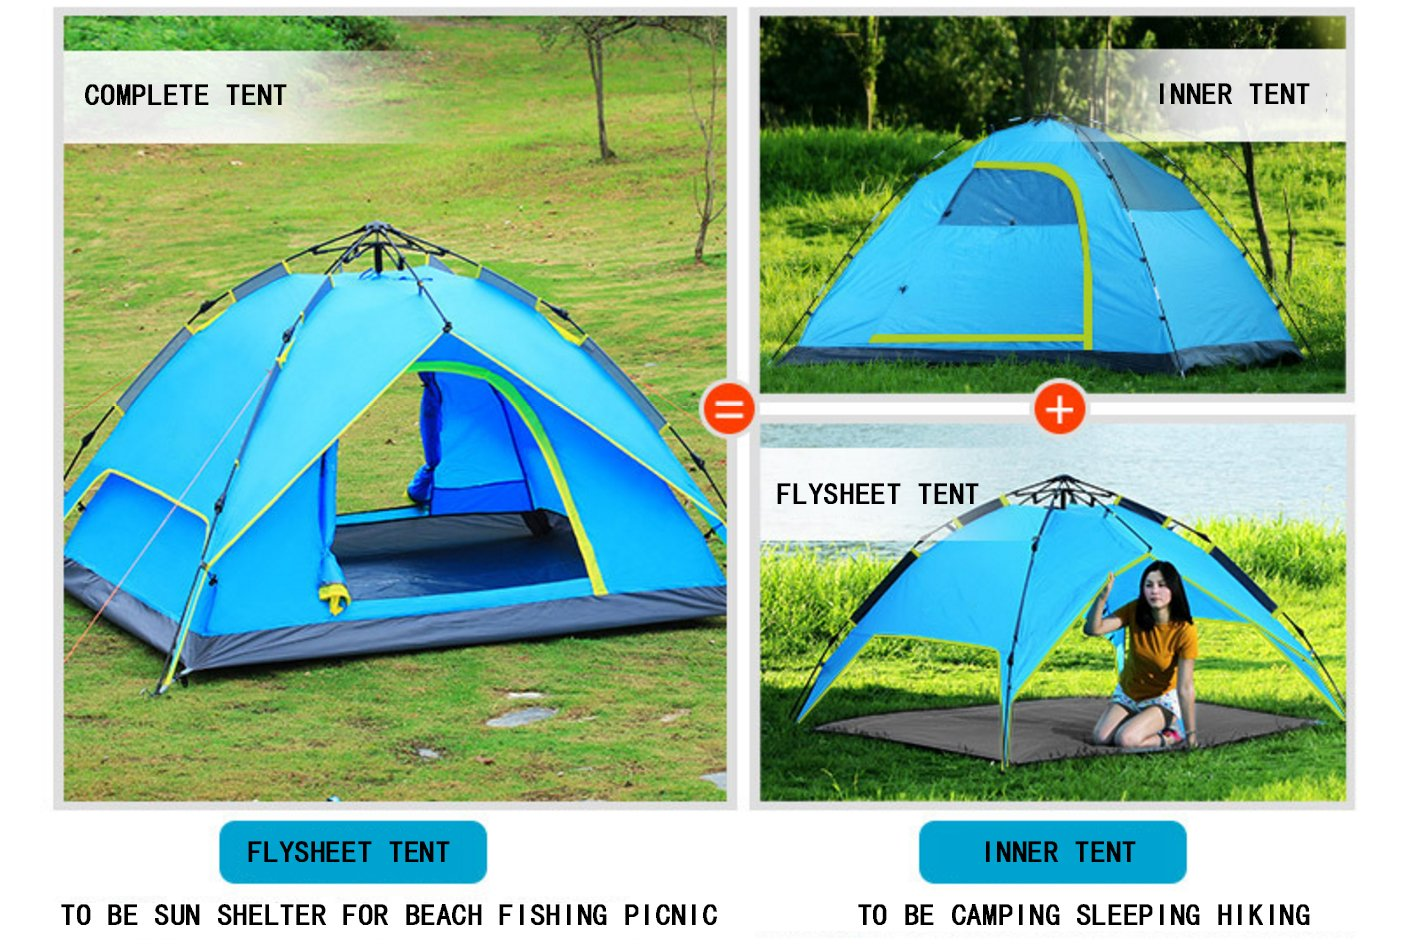 Amazon.com  AUGYMER C&ing Tent Pop Up 2-3 Person Tent for C&ing Automatic Portable Lightweight Backpacking Tents With Carry Bag for C&ing Hiking ...  sc 1 st  Amazon.com & Amazon.com : AUGYMER Camping Tent Pop Up 2-3 Person Tent for ...